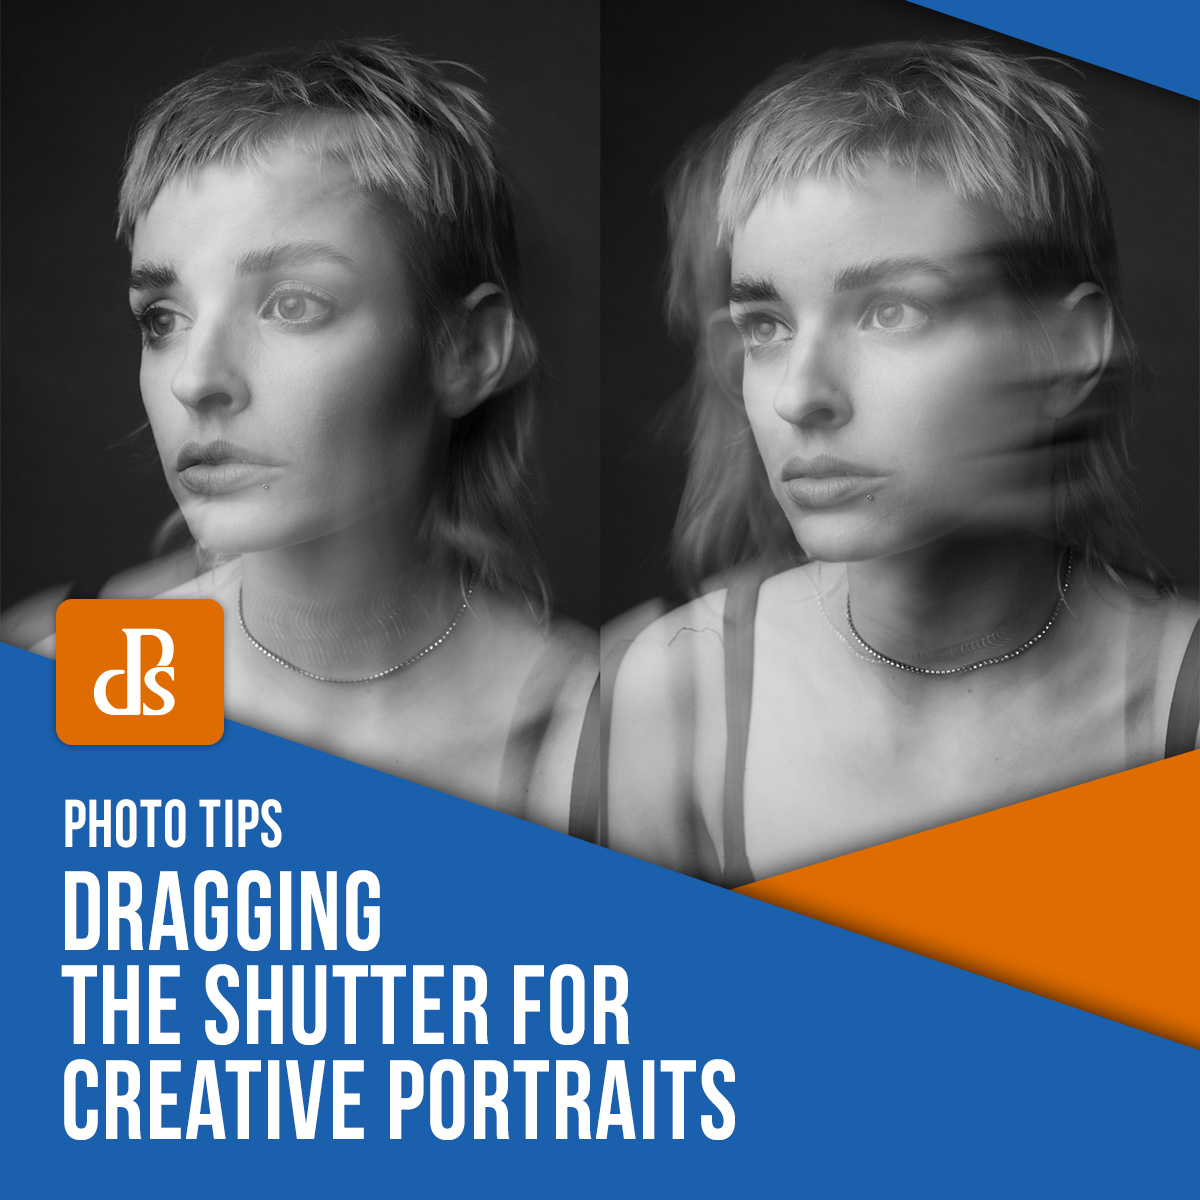 dragging the shutter for creative portraits featured image